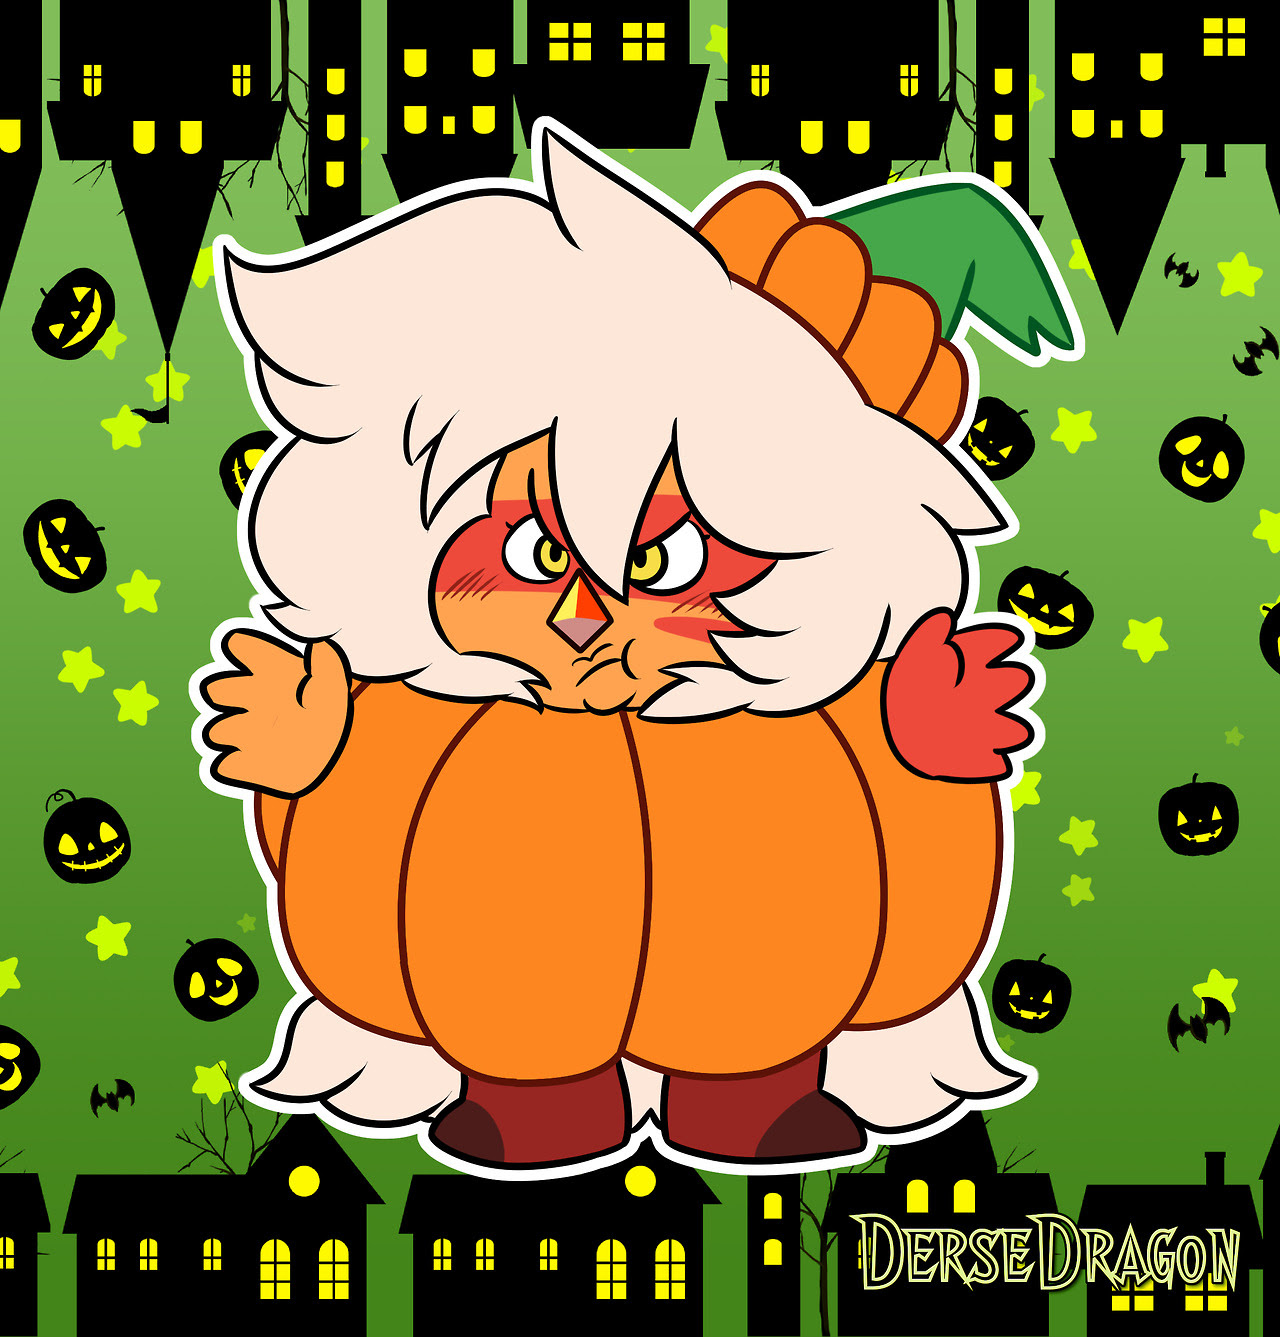 Jasper Pumpkin fusion °^°) …or Jasp in a pumpkin costume xD